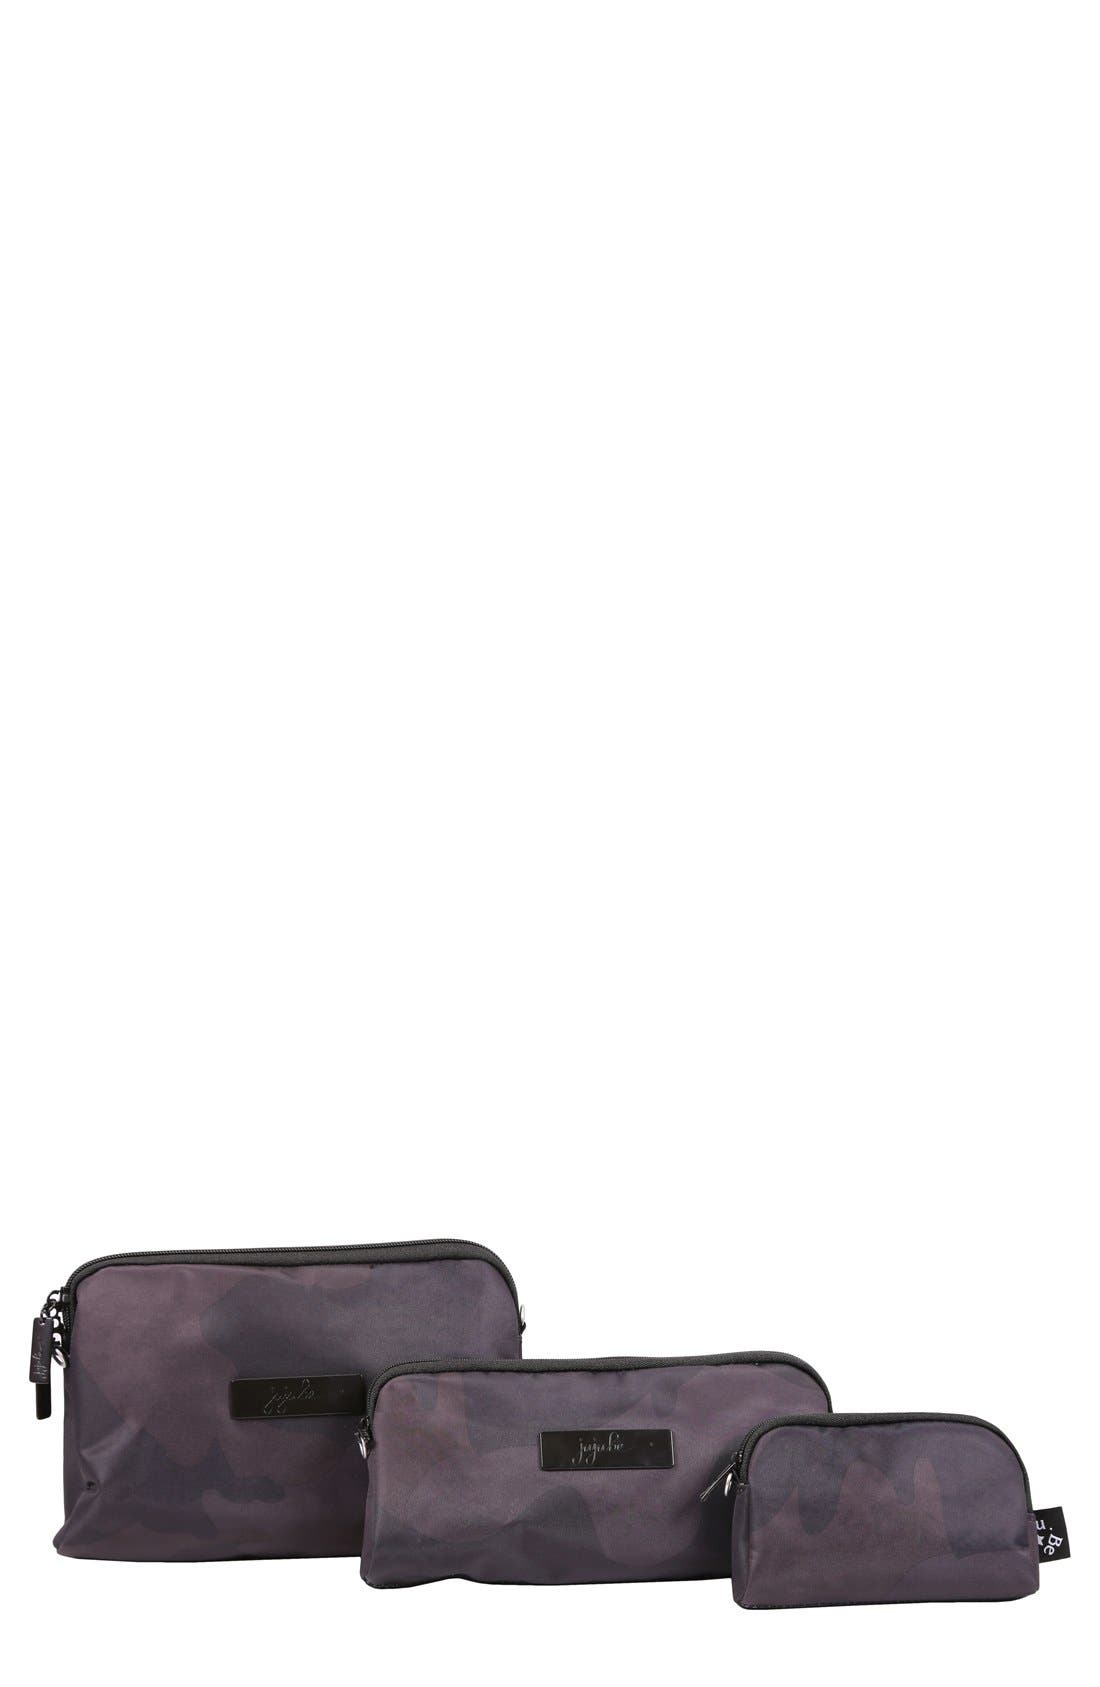 Ju-Ju-Be 'Be Set - Onyx Collection' Top Zip Cases (Set of 3)